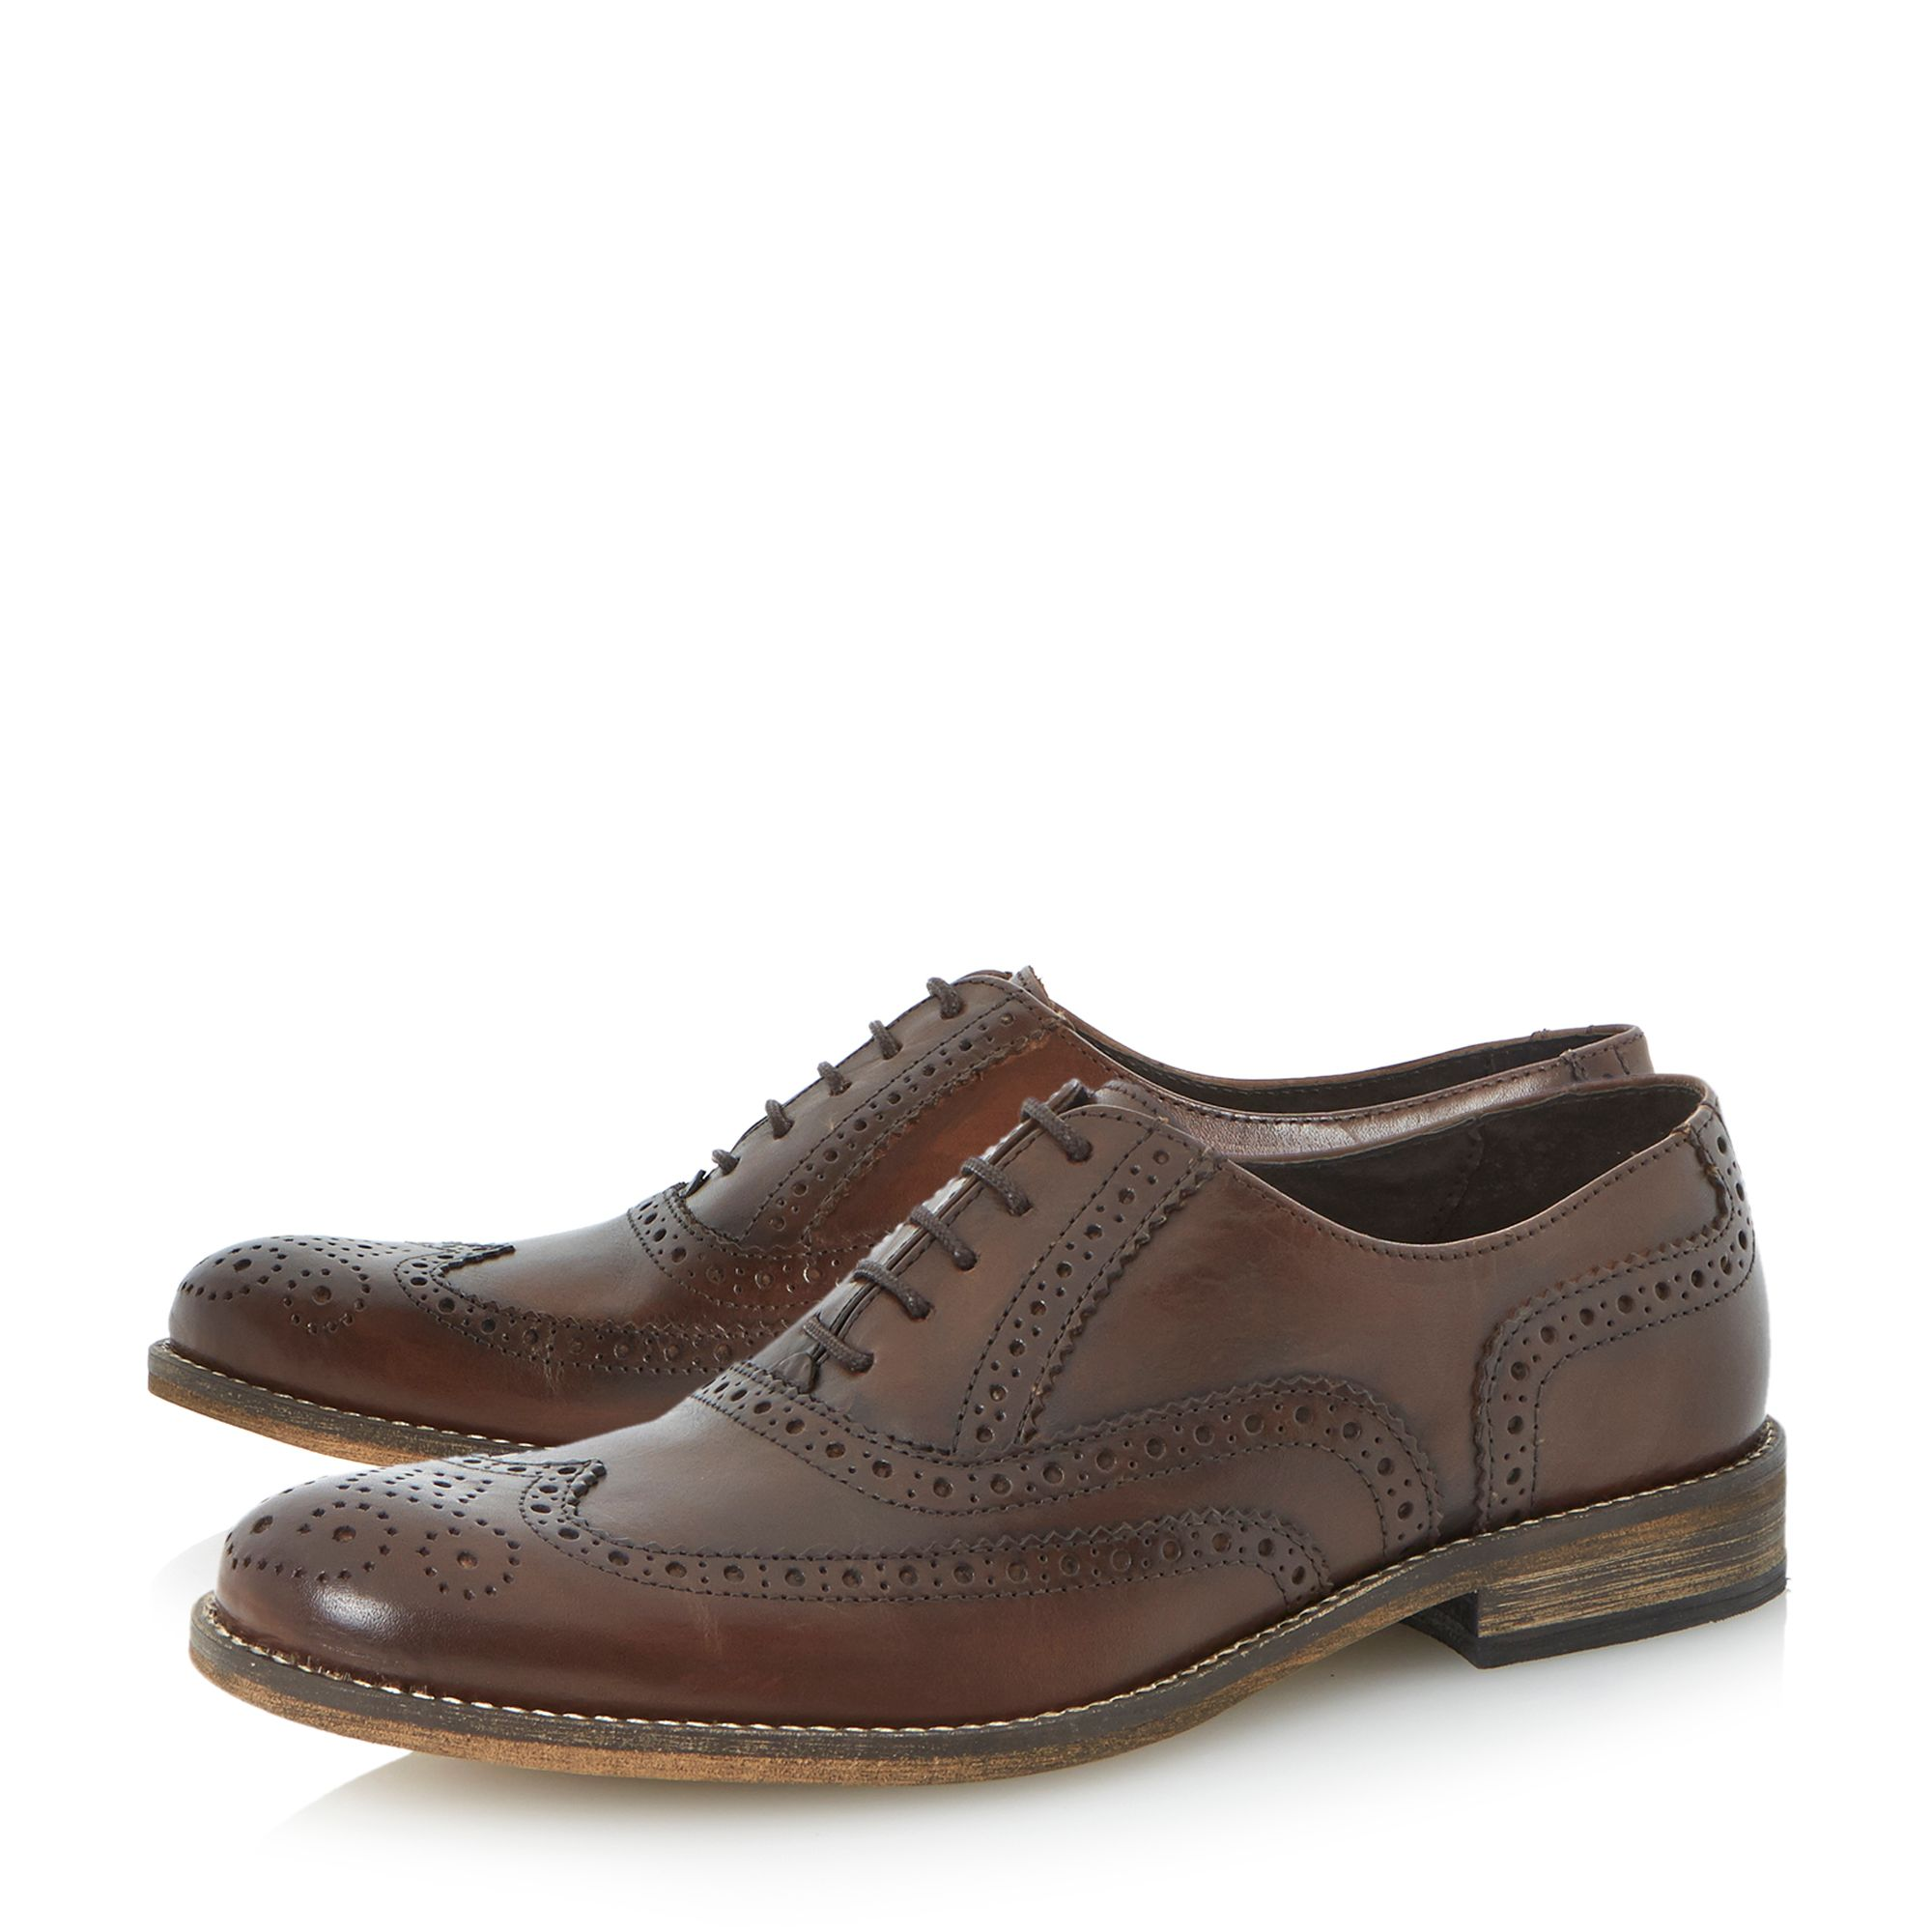 Braker oxford lace up brogues